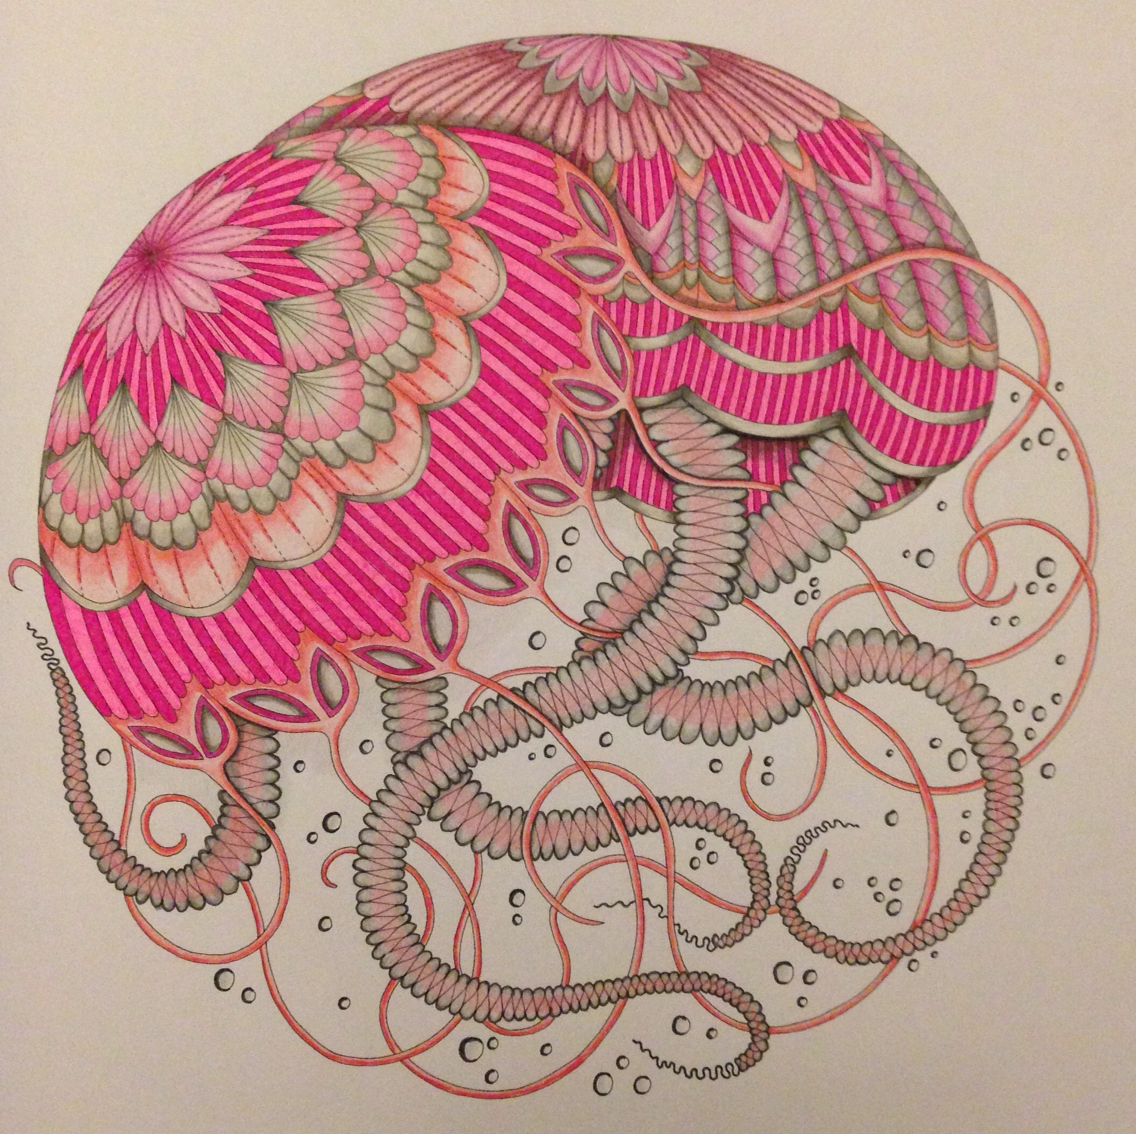 Drawn jellies millie marotta  completed from Wonderland Tropical